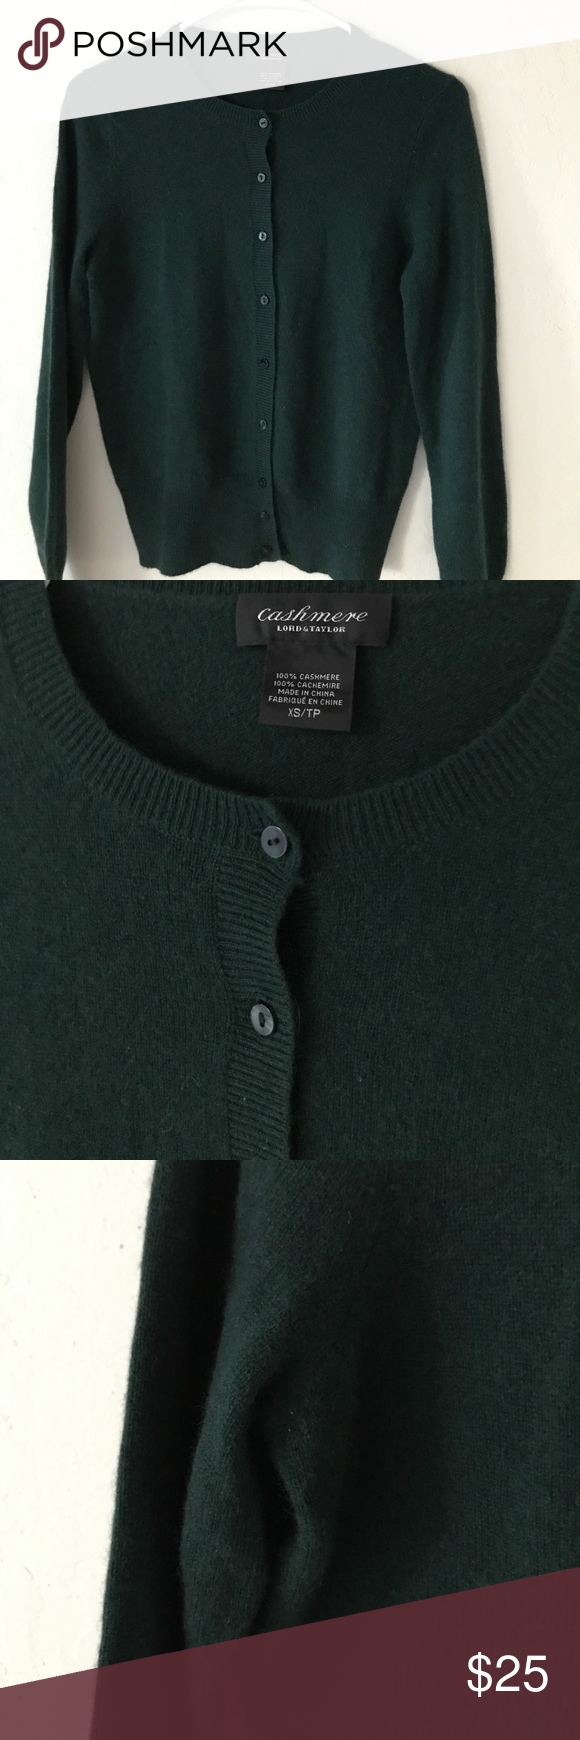 Lord and Taylor cashmere cardigan | Lord, Cashmere and Conditioning